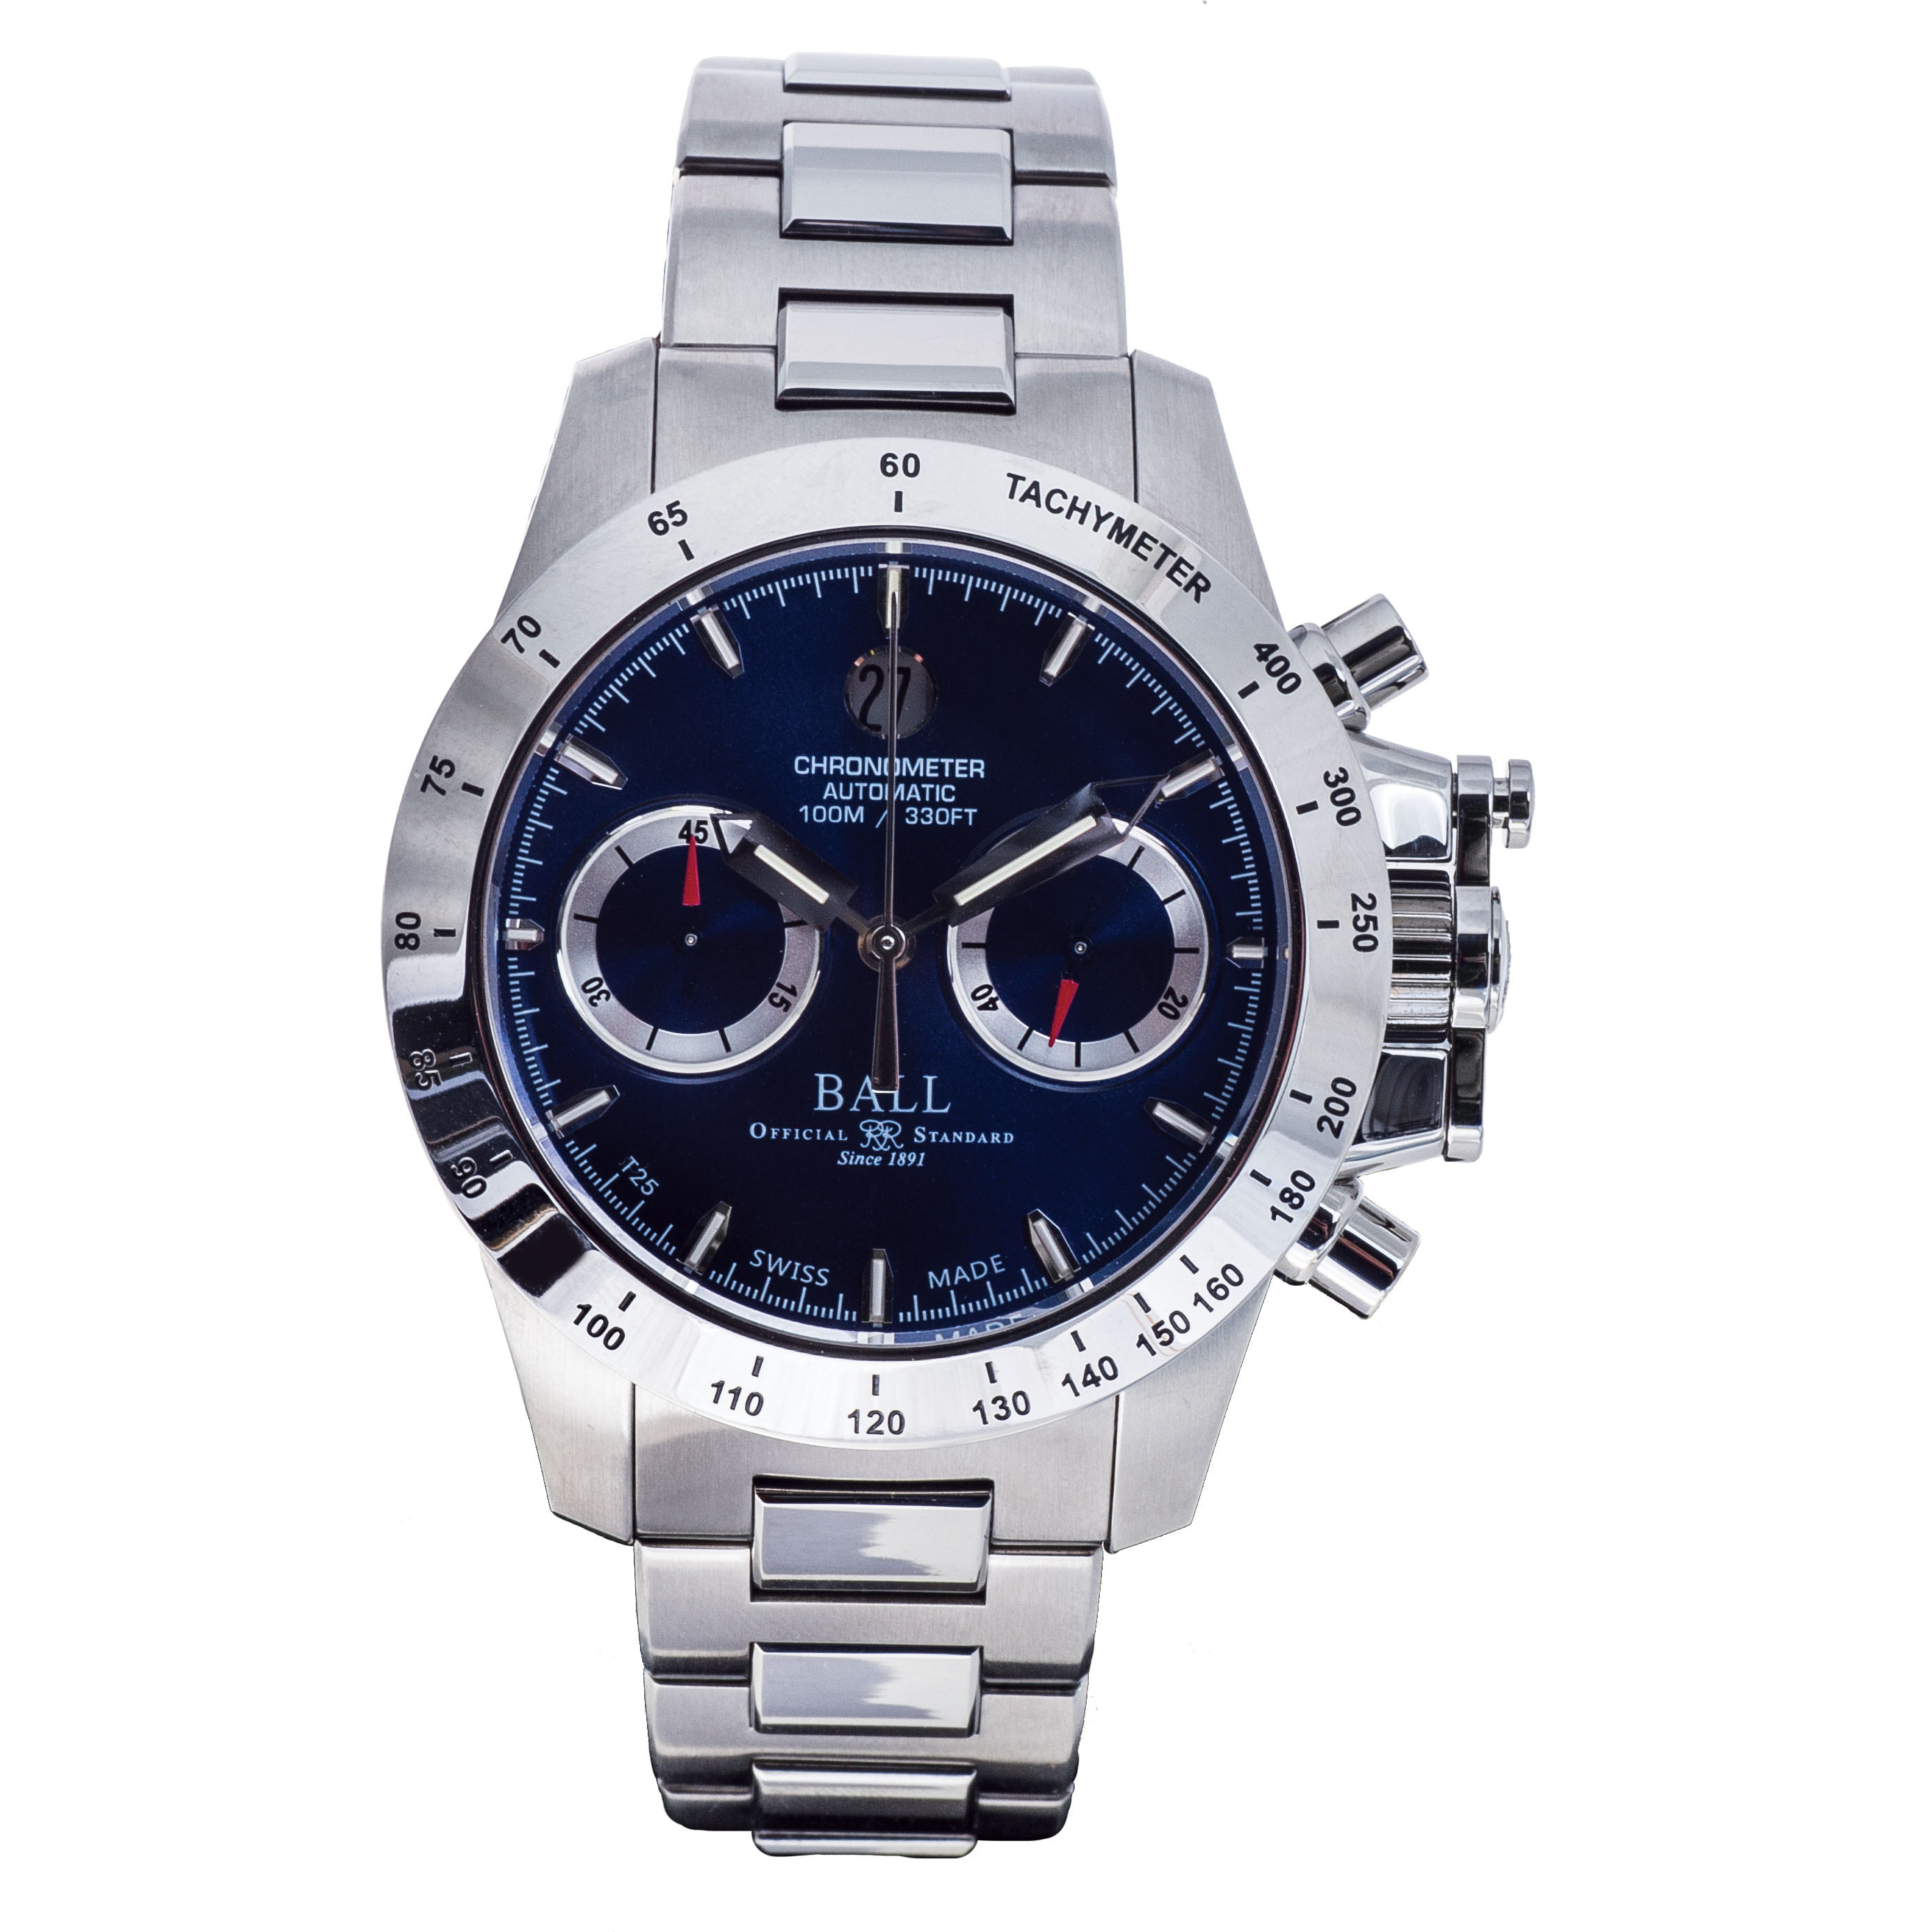 New Man's Ball Engineer Hydrocarbon Magnate Chronograph